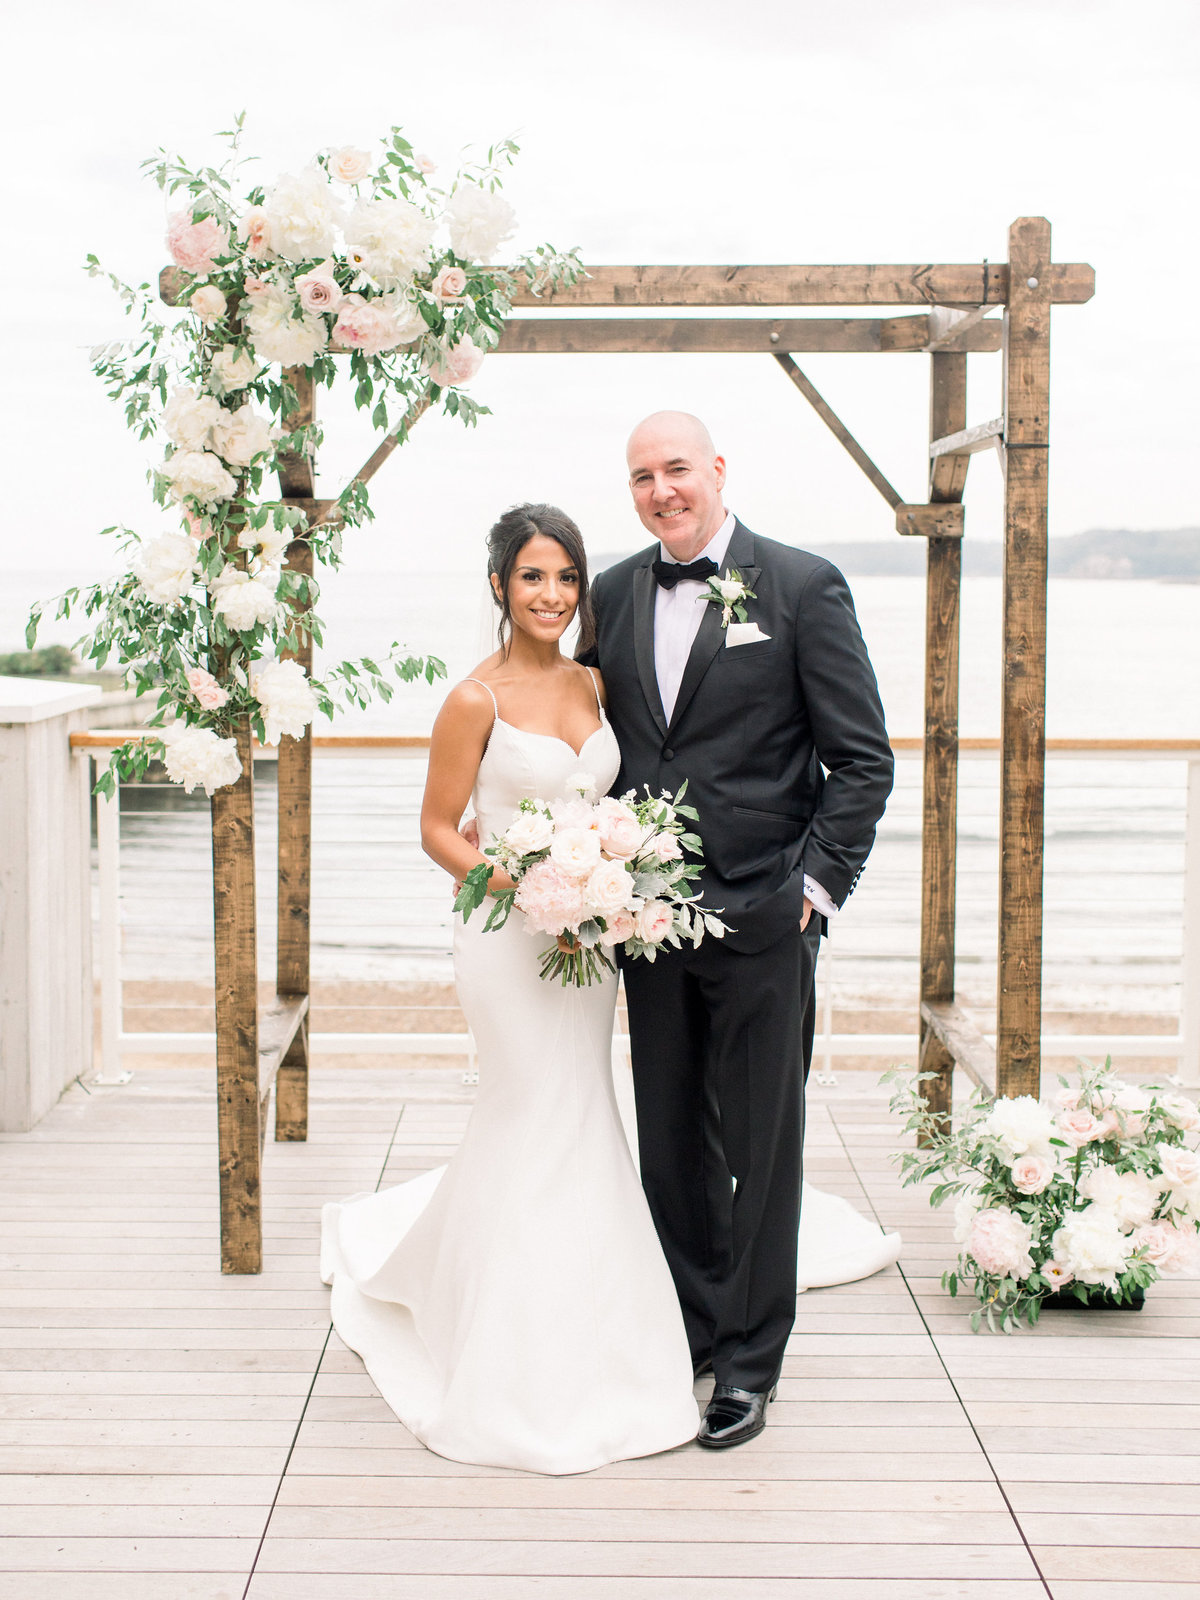 A Beauport Hotel Wedding, massachusets wedding photographer, beautport hotel wedding photos, Gloucester Wedding Photographer-5234